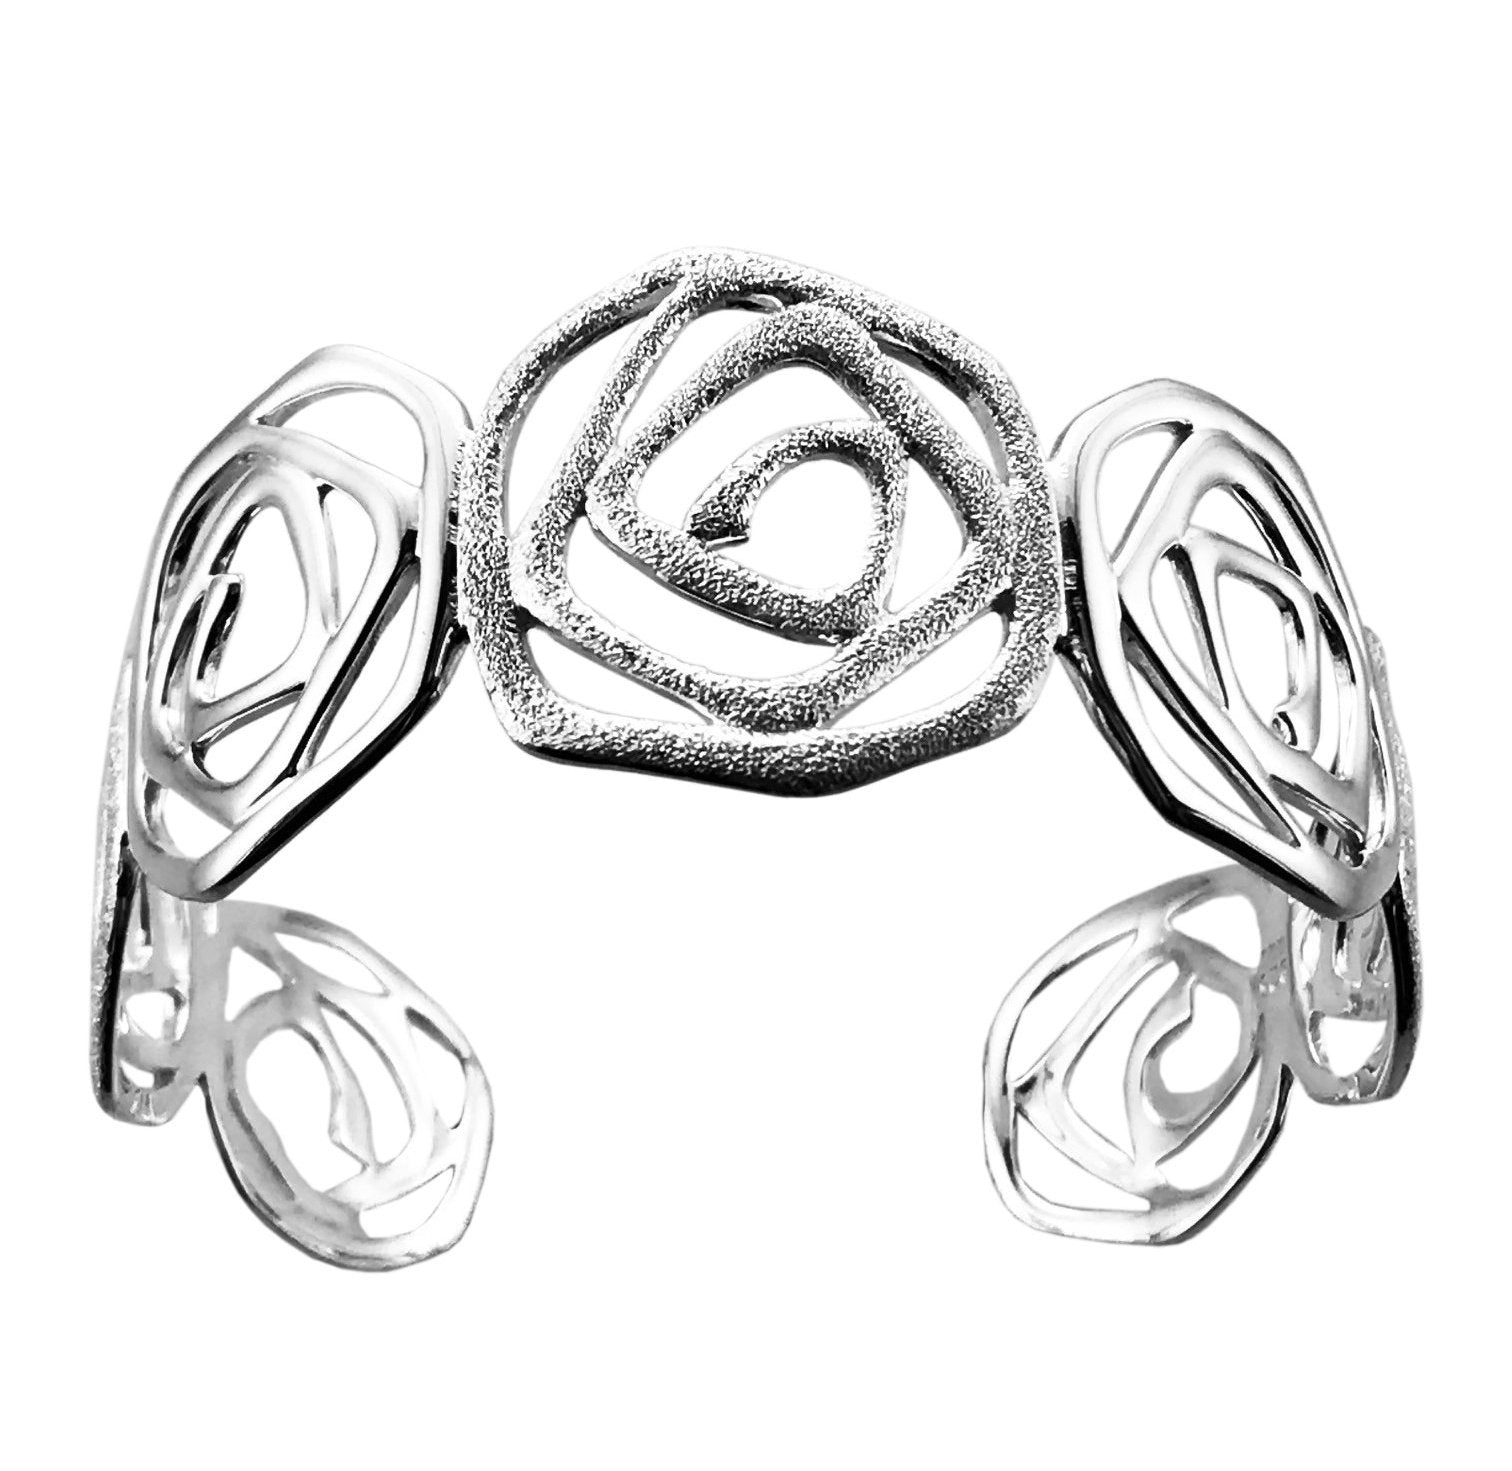 Silver Open Rose Torque Bangle